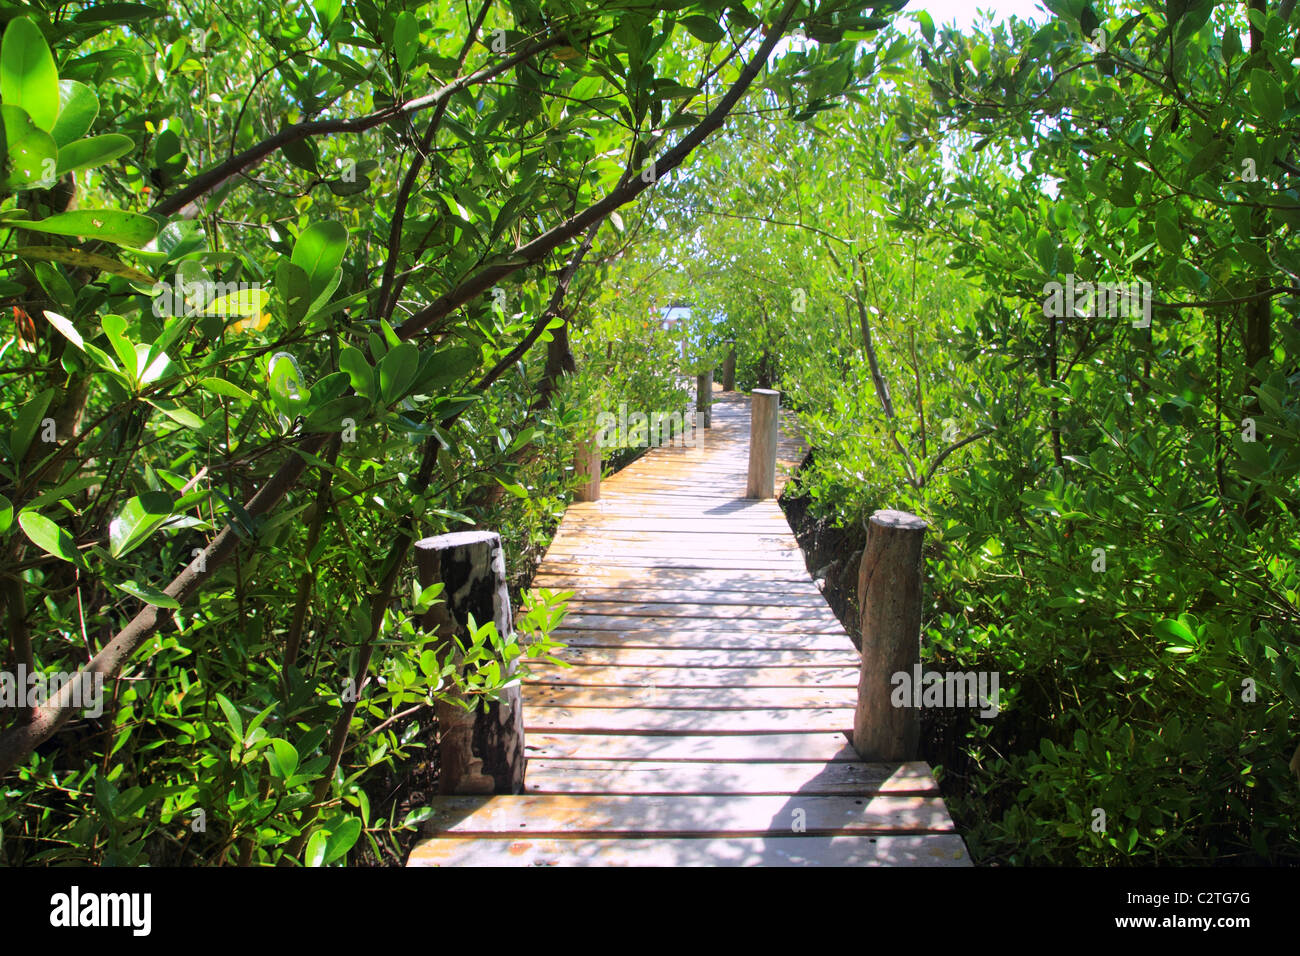 mangrove forest walkway jungle Quintana Roo mexico - Stock Image